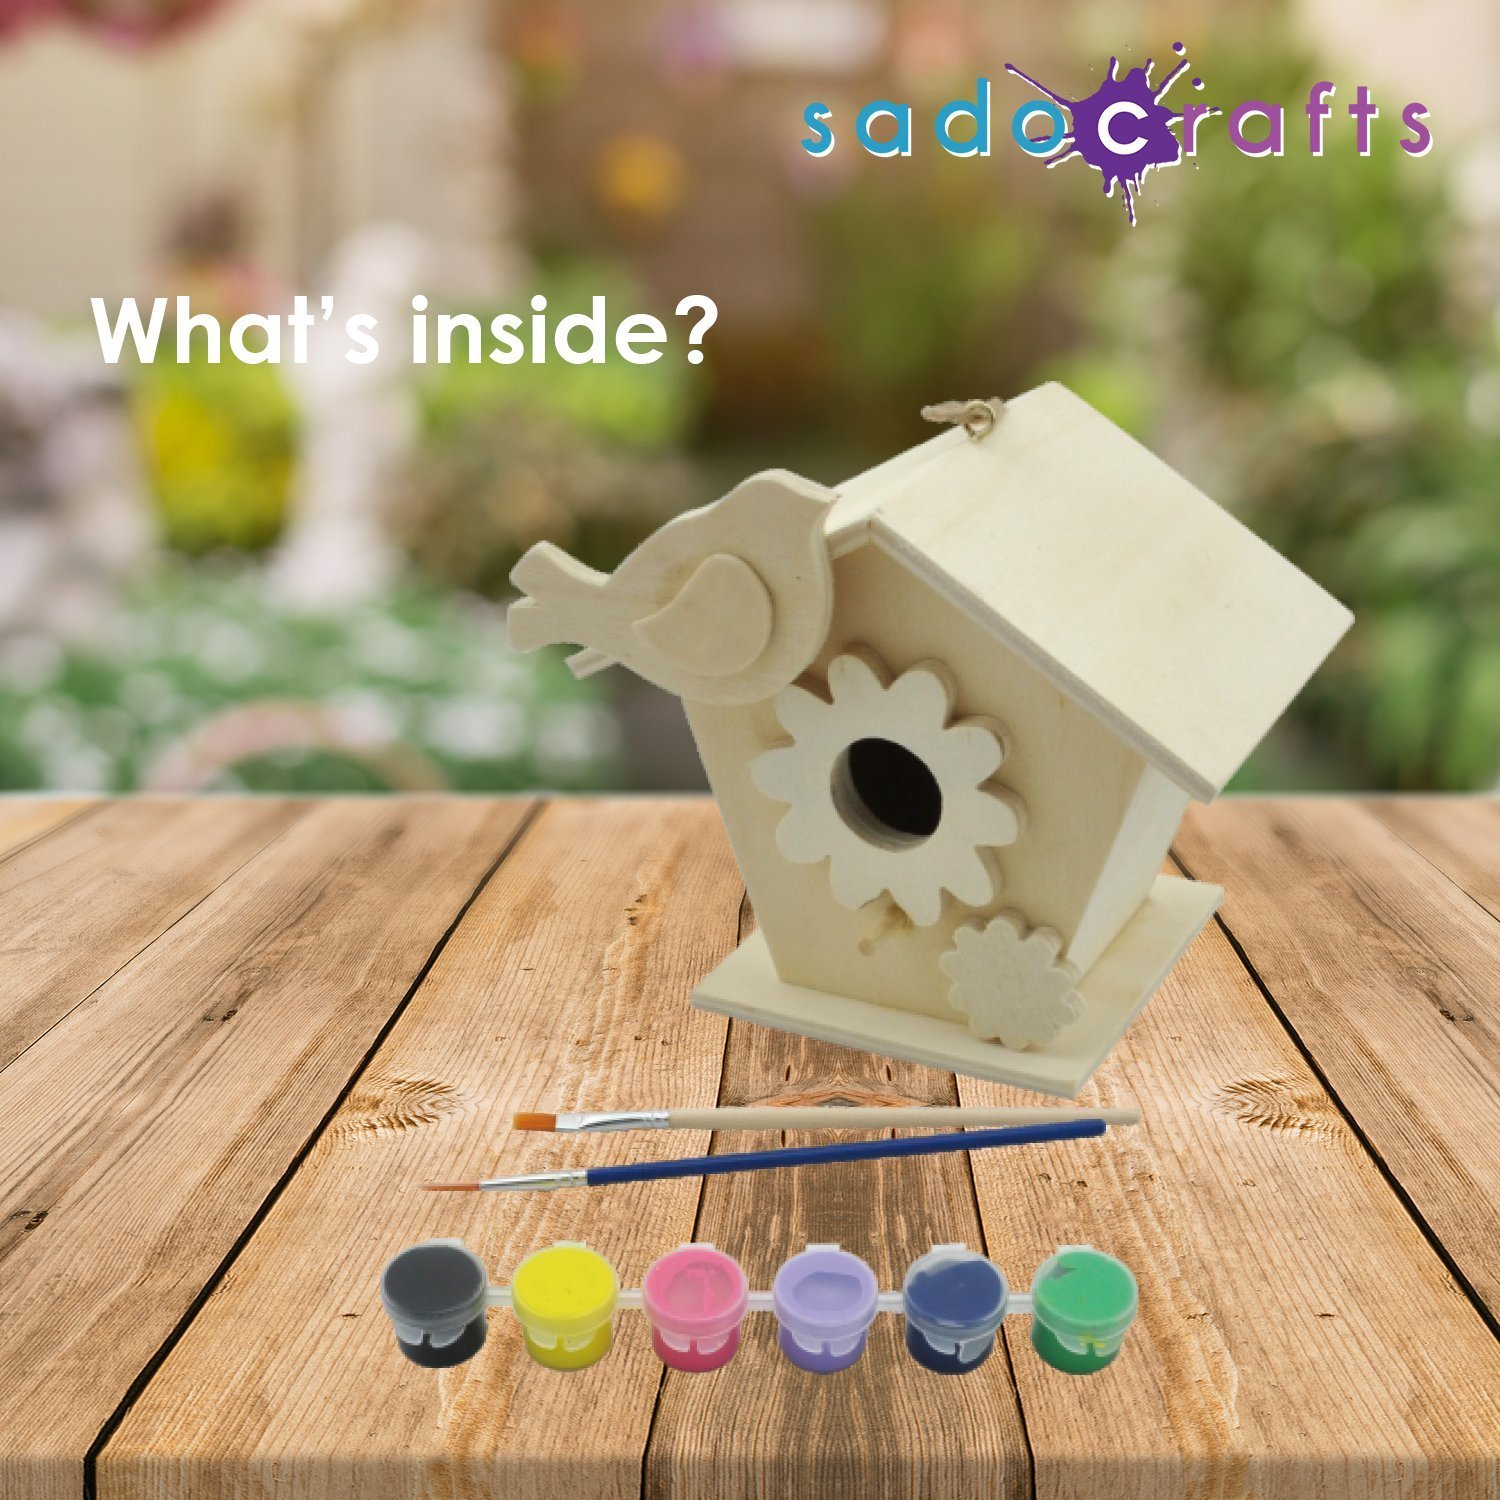 SadoCrafts Paint Your Own Birdhouse - Fun Interactive Educational DIY Wood Arts and Crafts Kit For Kids